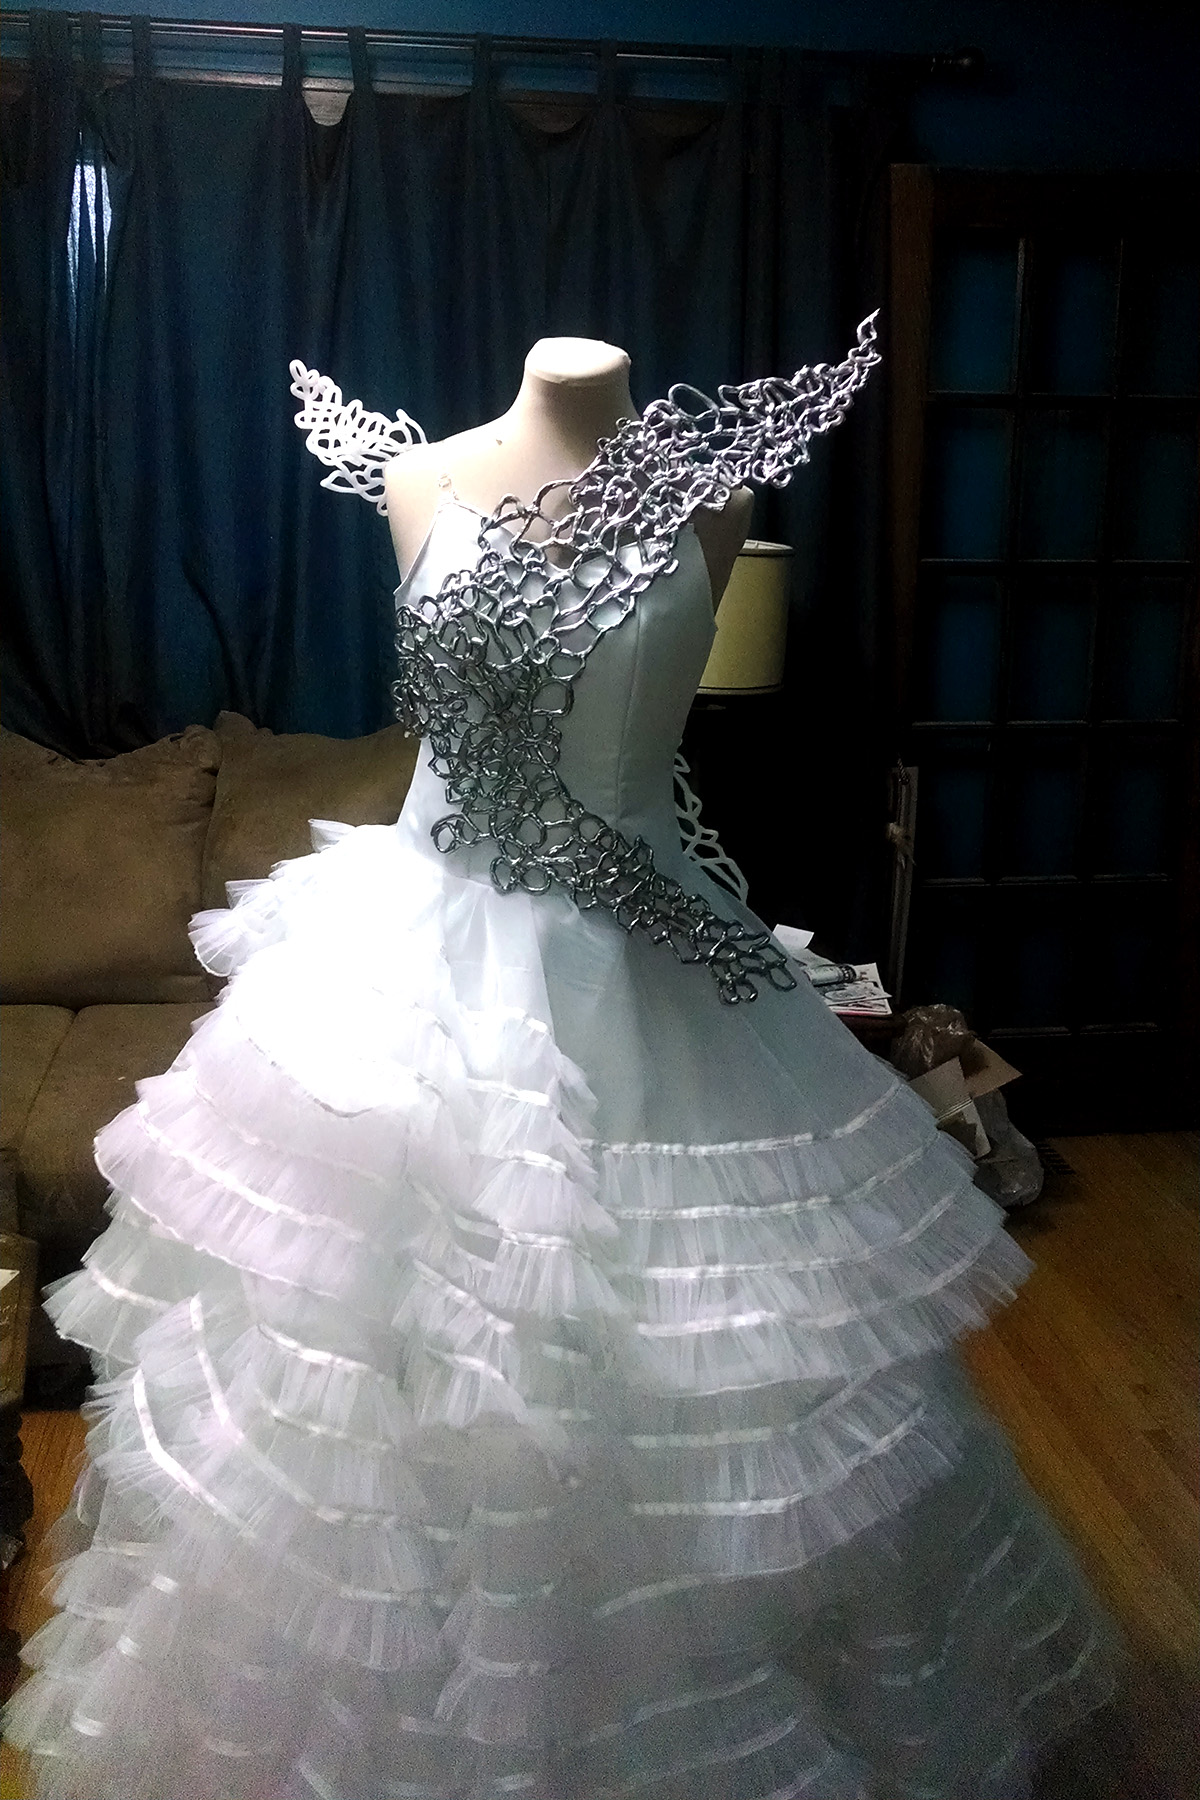 The two Katniss wings attached to the start of the Hunger Games wedding gown, on a dress form - front view.